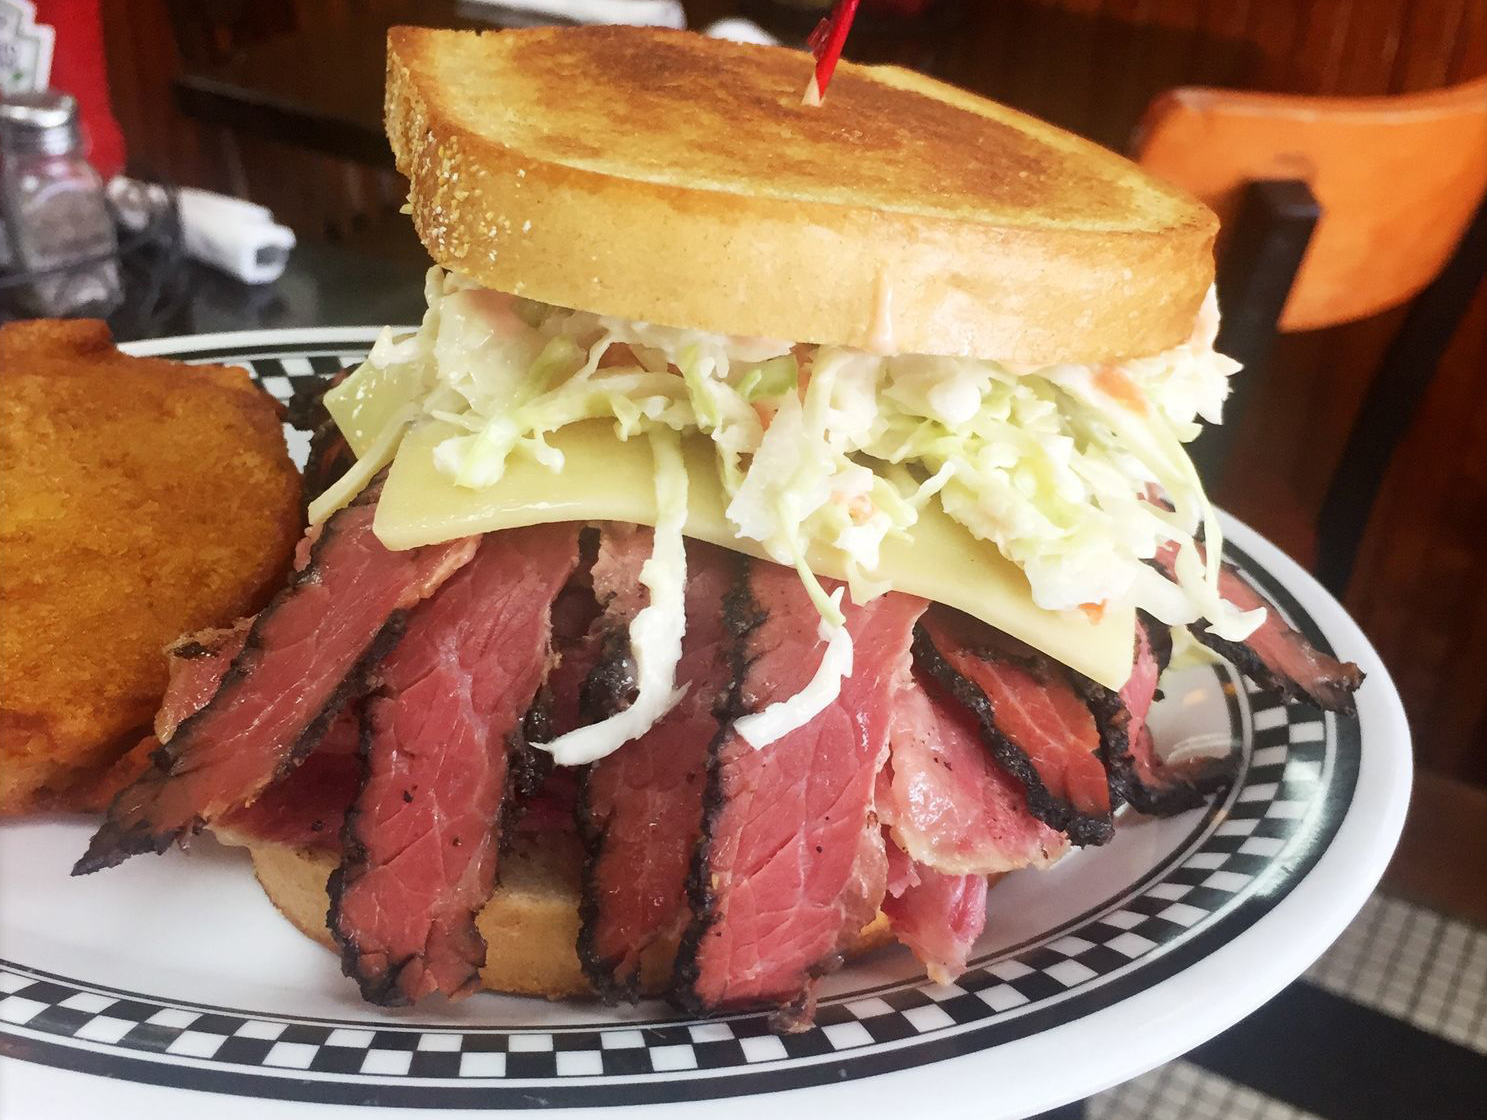 The corned beef and pastrami combo with Swiss cheese and cole slaw at the Kibitz Room in Cherry Hill. (CRAIG LABAN / Staff)